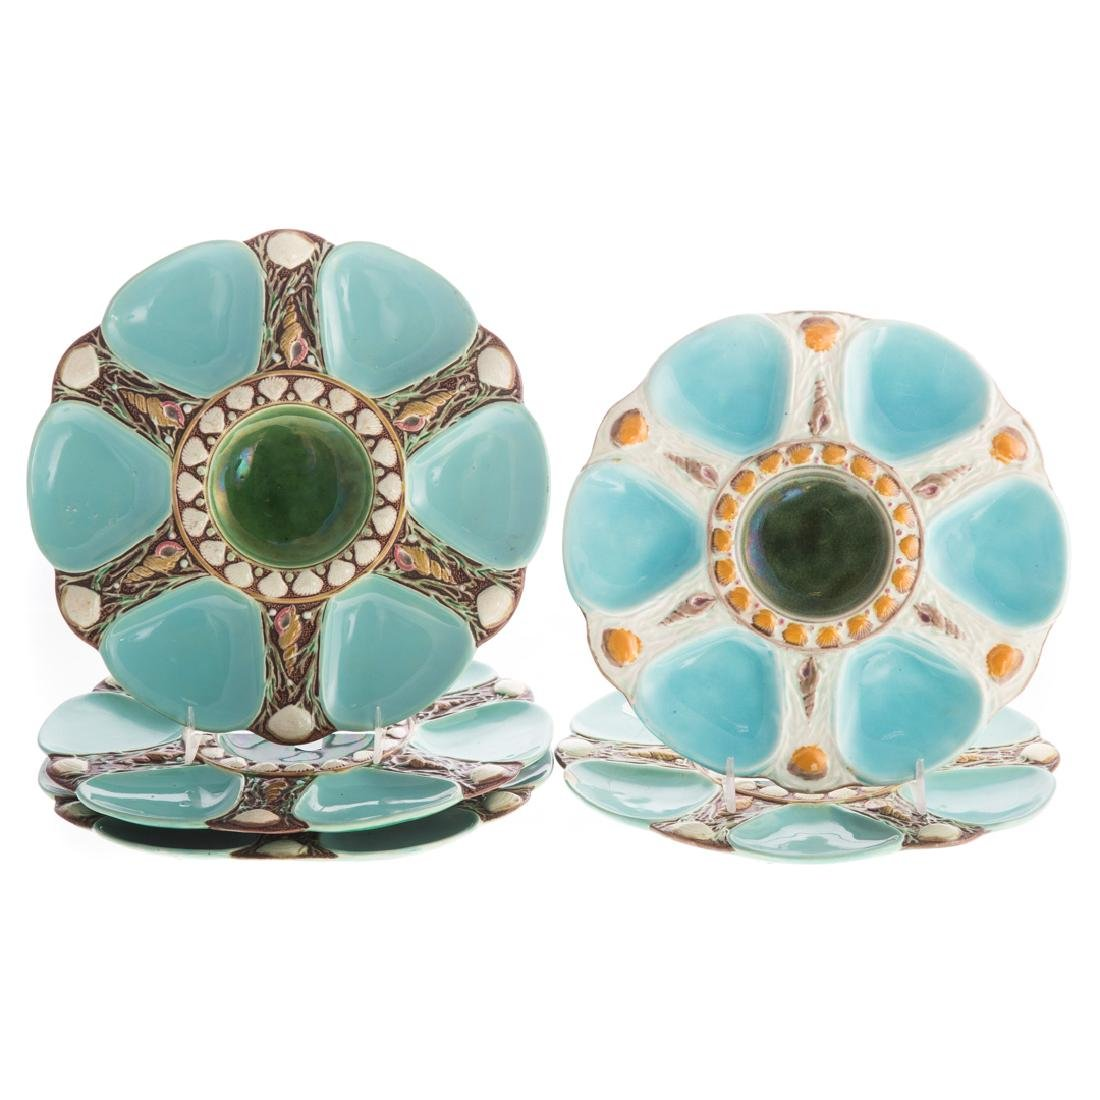 Four Minton majolica oyster plates